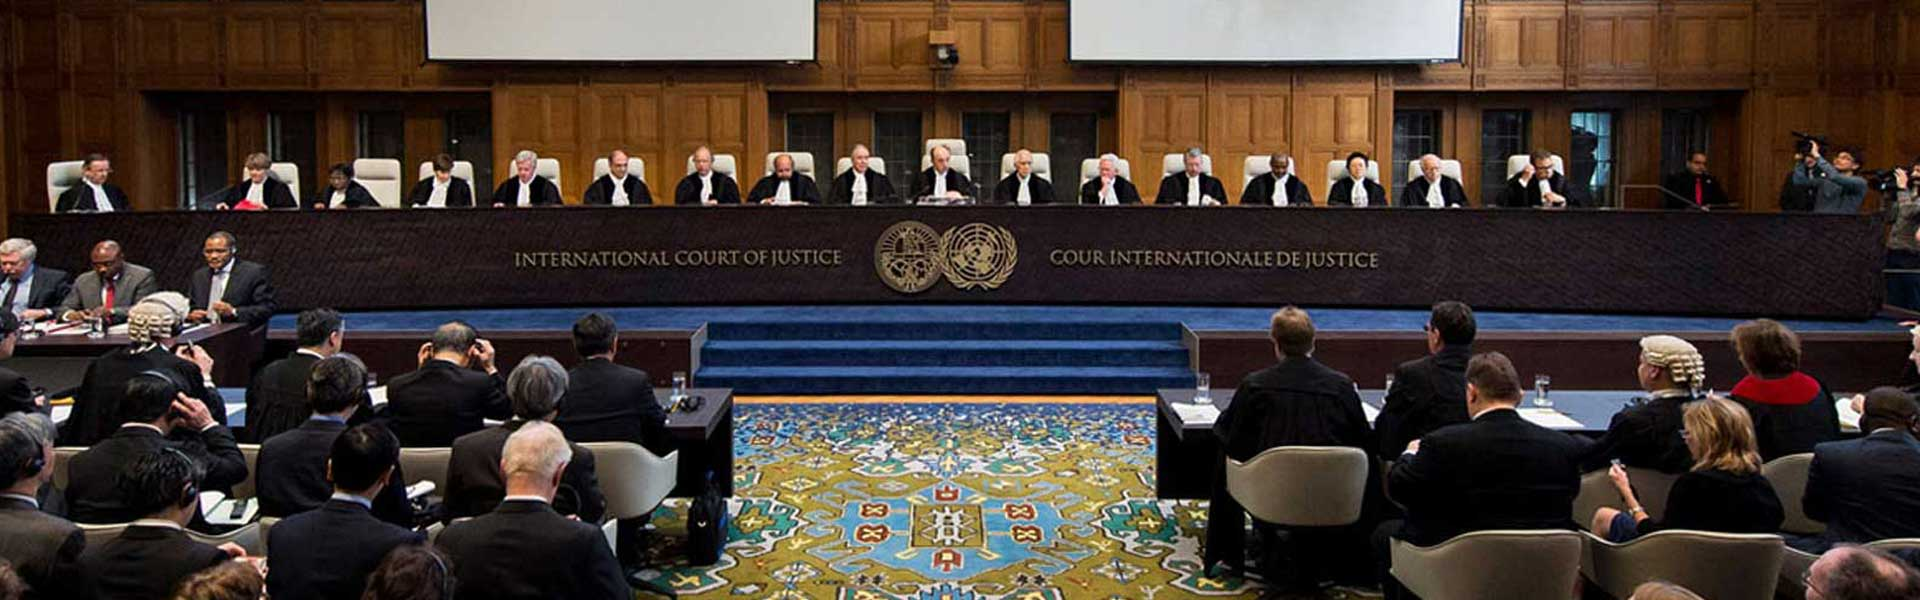 international court justice